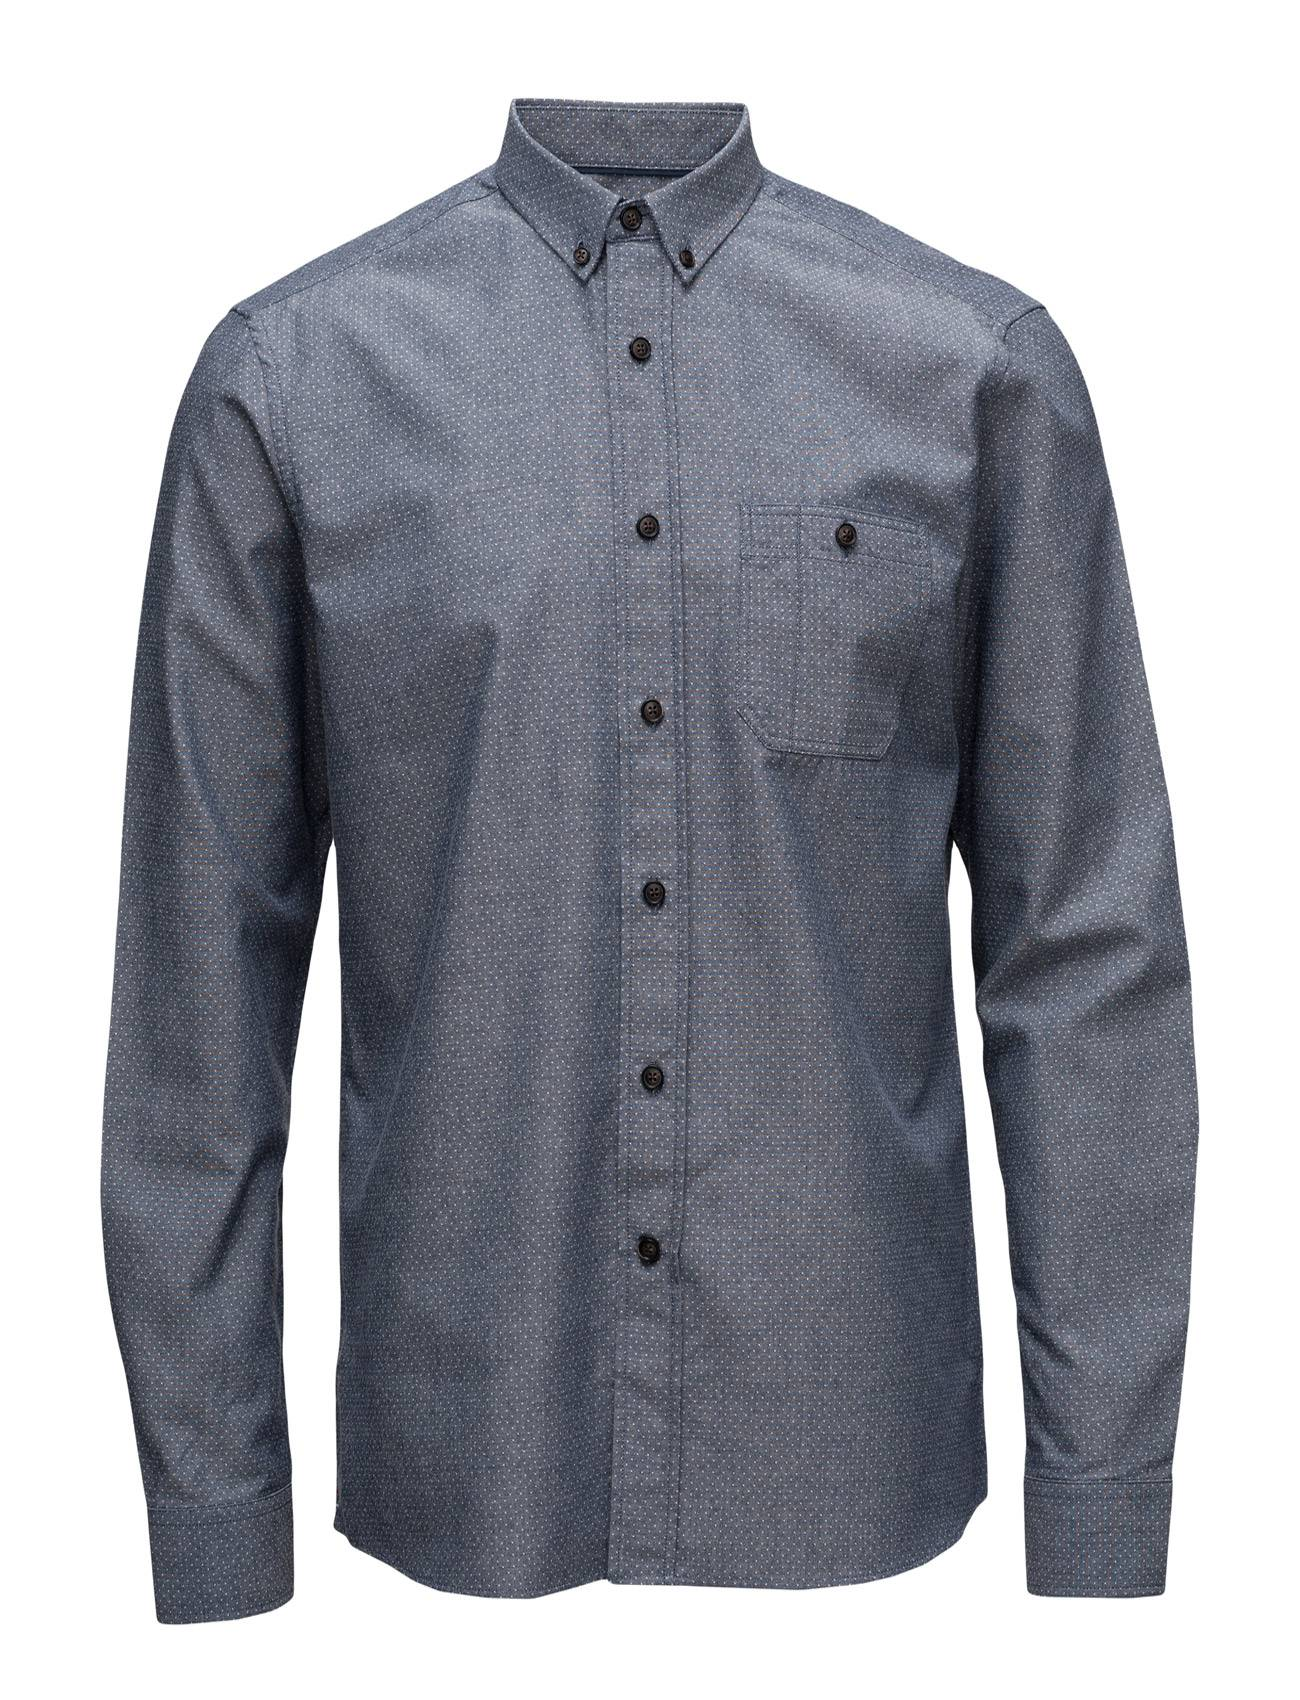 Henri Lloyd Darrow Regular Shirt